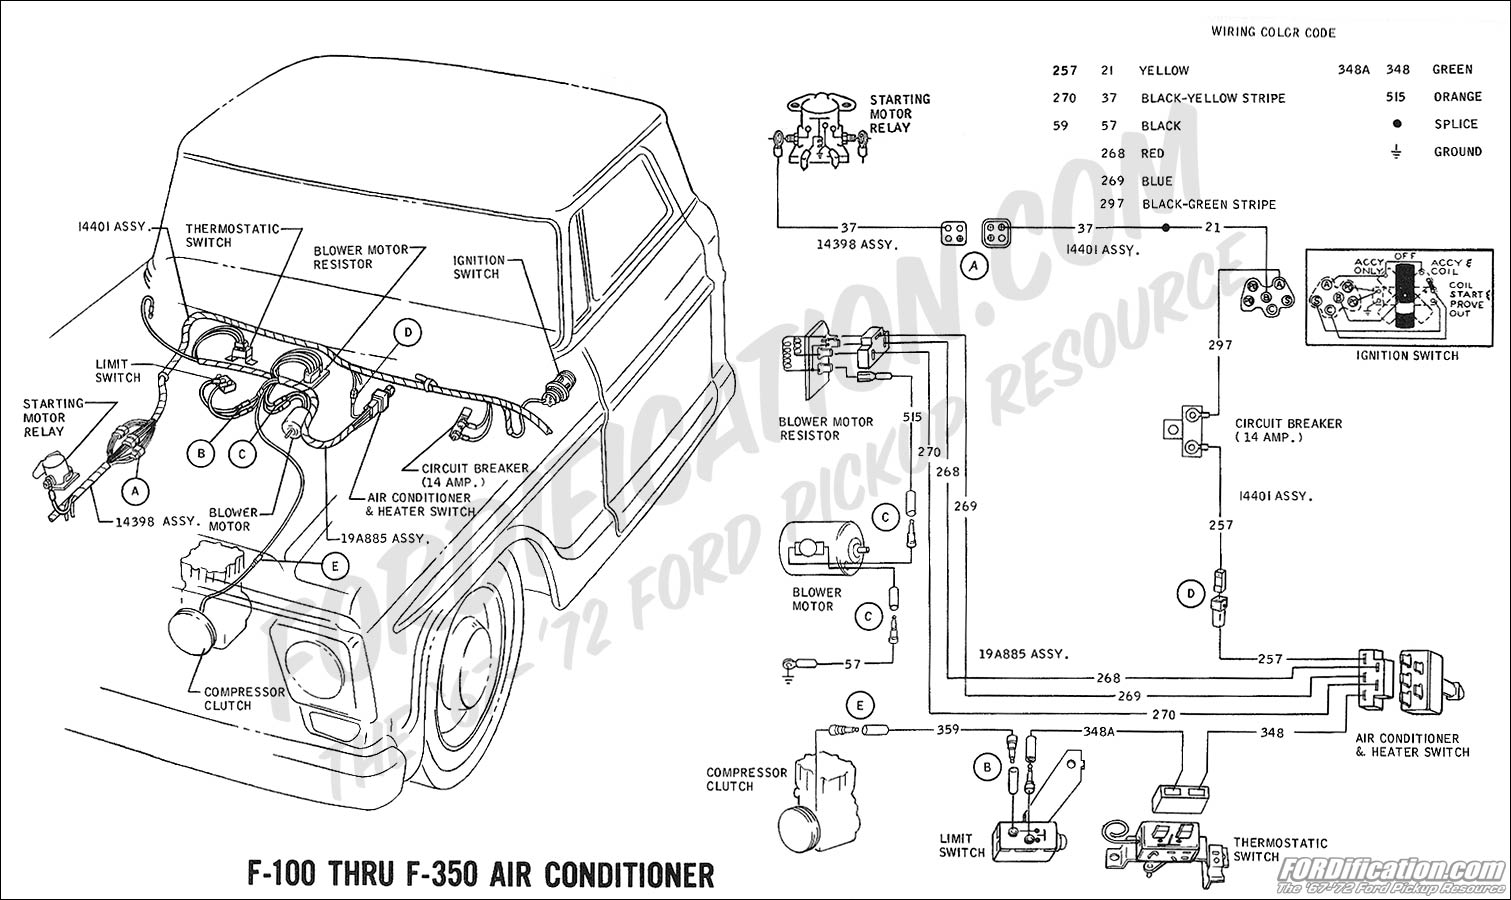 wiring_69ac 1999 ford f 150 radio wiring diagram chevy truck wiring diagram 1999 cadillac deville radio wiring diagram at readyjetset.co